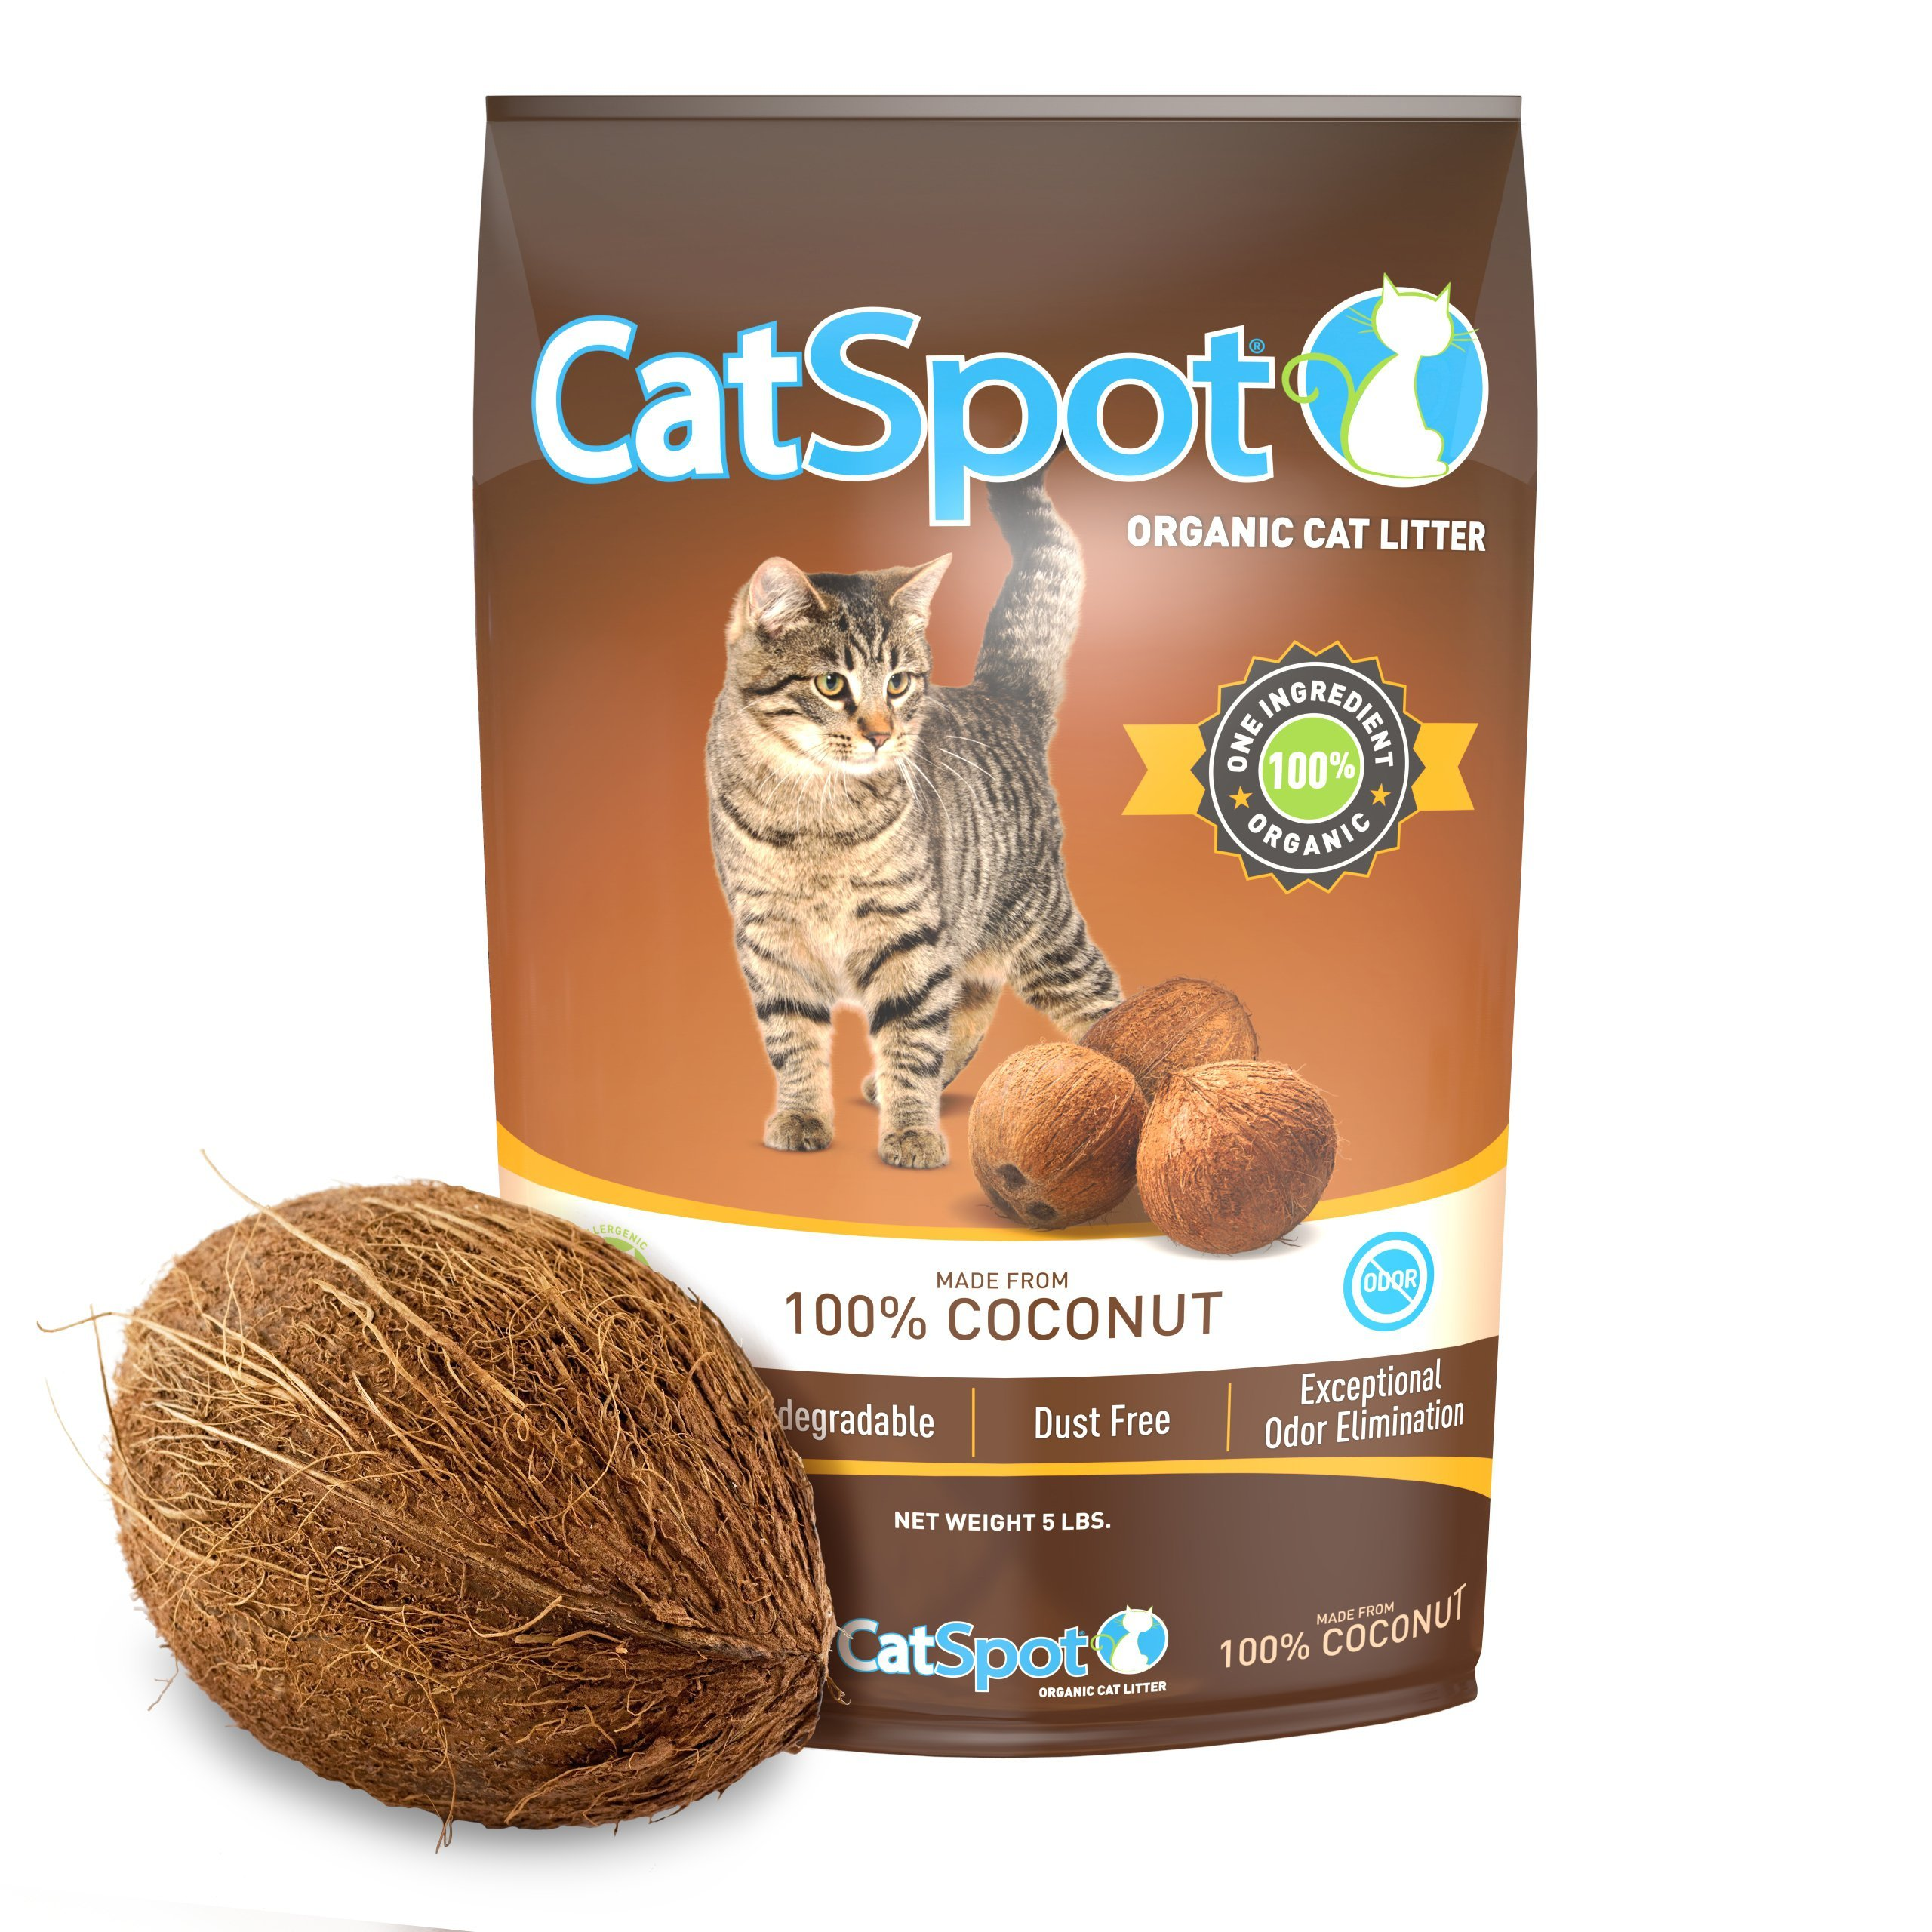 CatSpot Litter, 100% Coconut Cat Litter: All-Natural, Lightweight & Dust-Free. Non-Clumping (1 Bag)